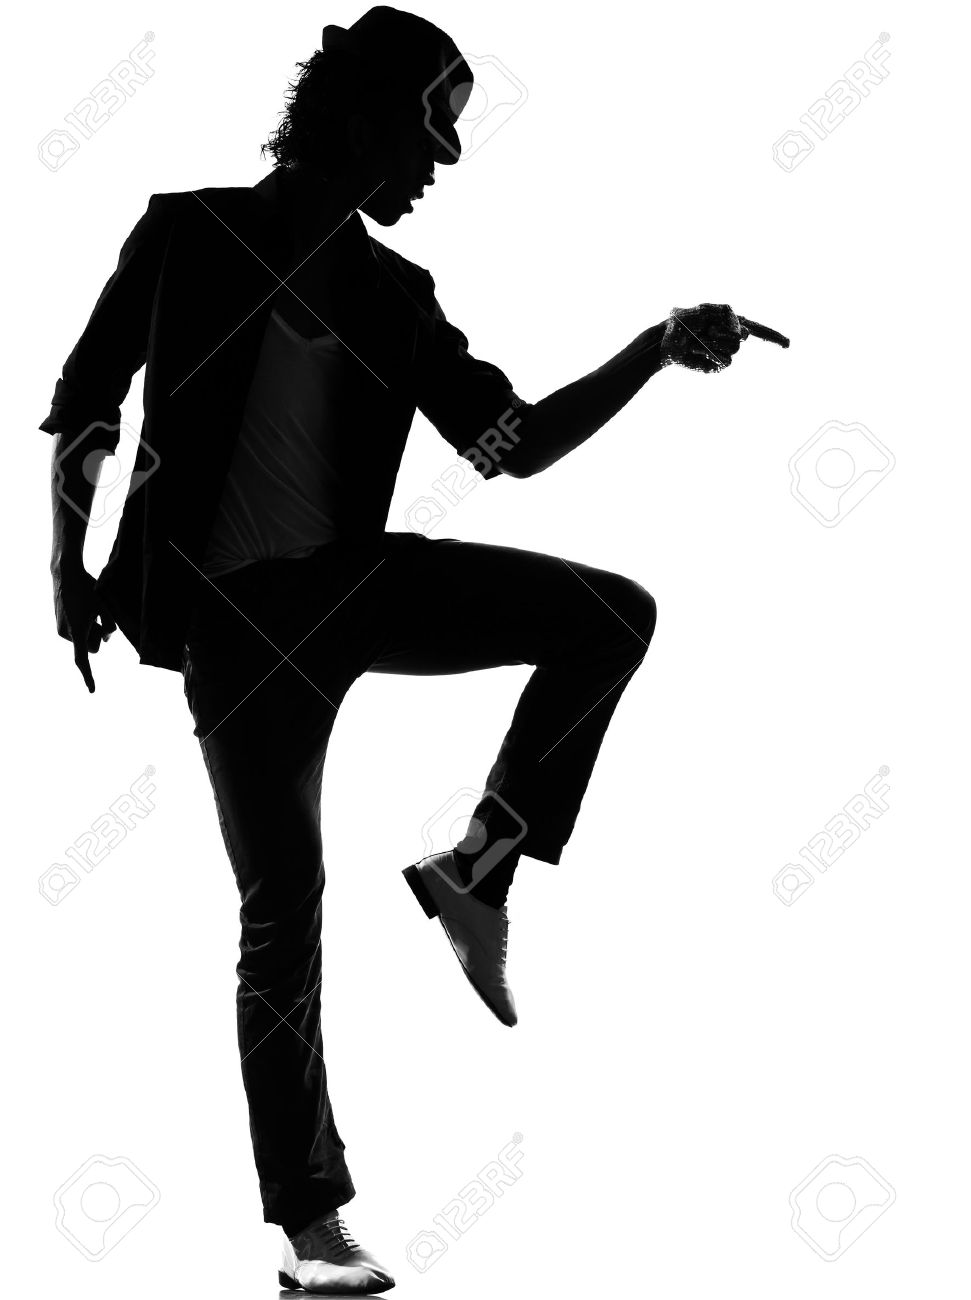 full length silhouette of a young man dancer dancing funky hip hop r&b on  isolated  studio white background Stock Photo - 14683171